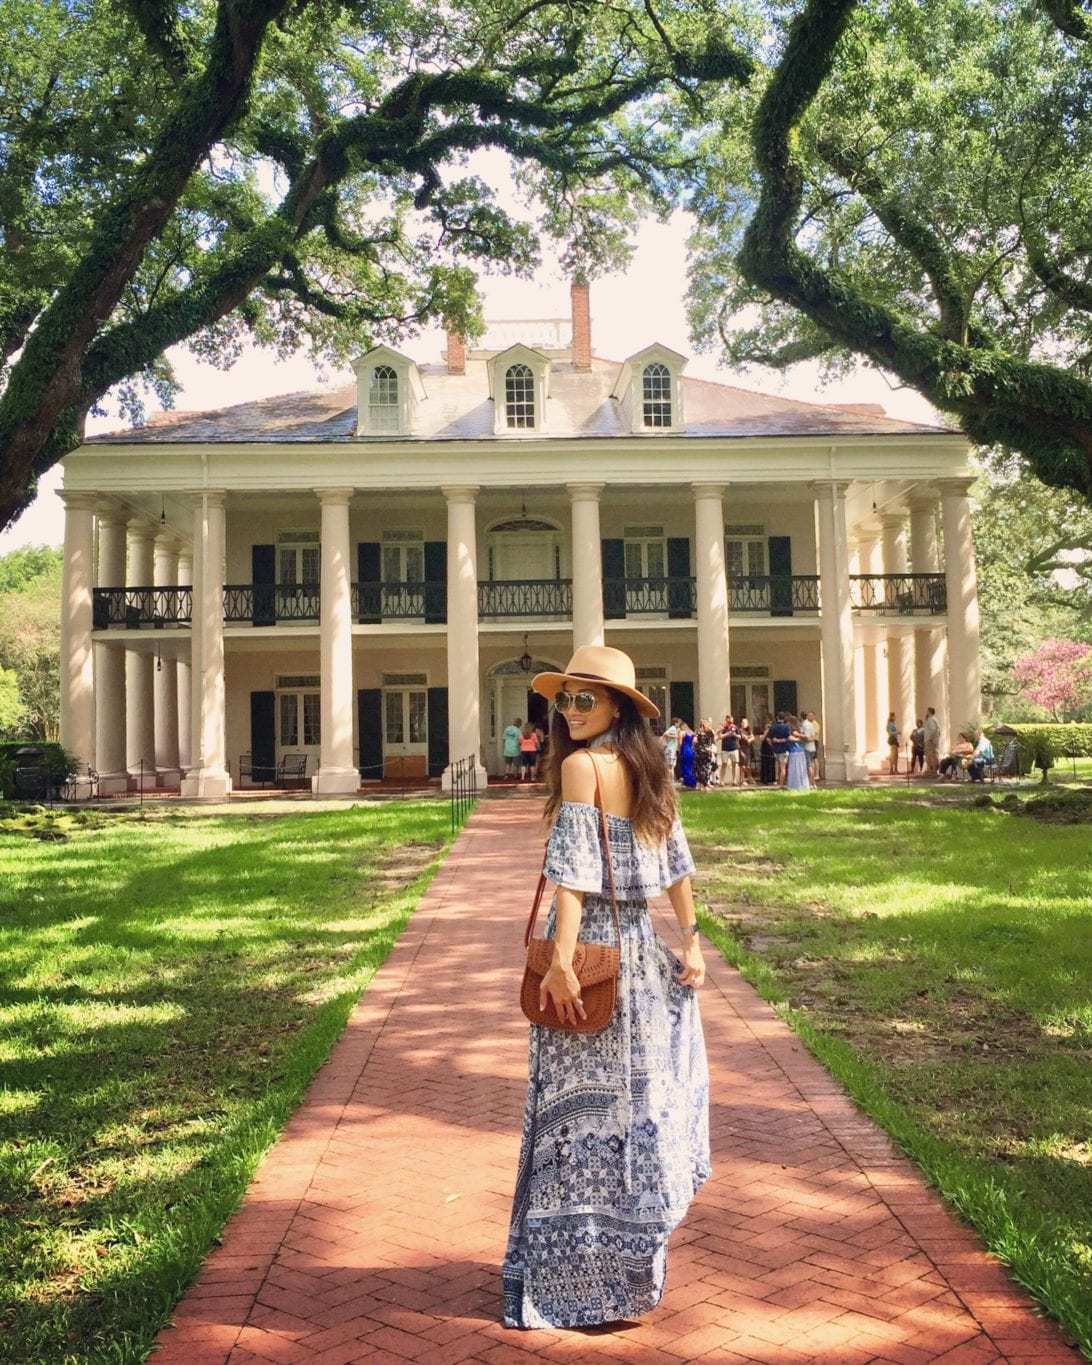 oak alley plantation, things to do in new orleans, visit new orleans, plantations